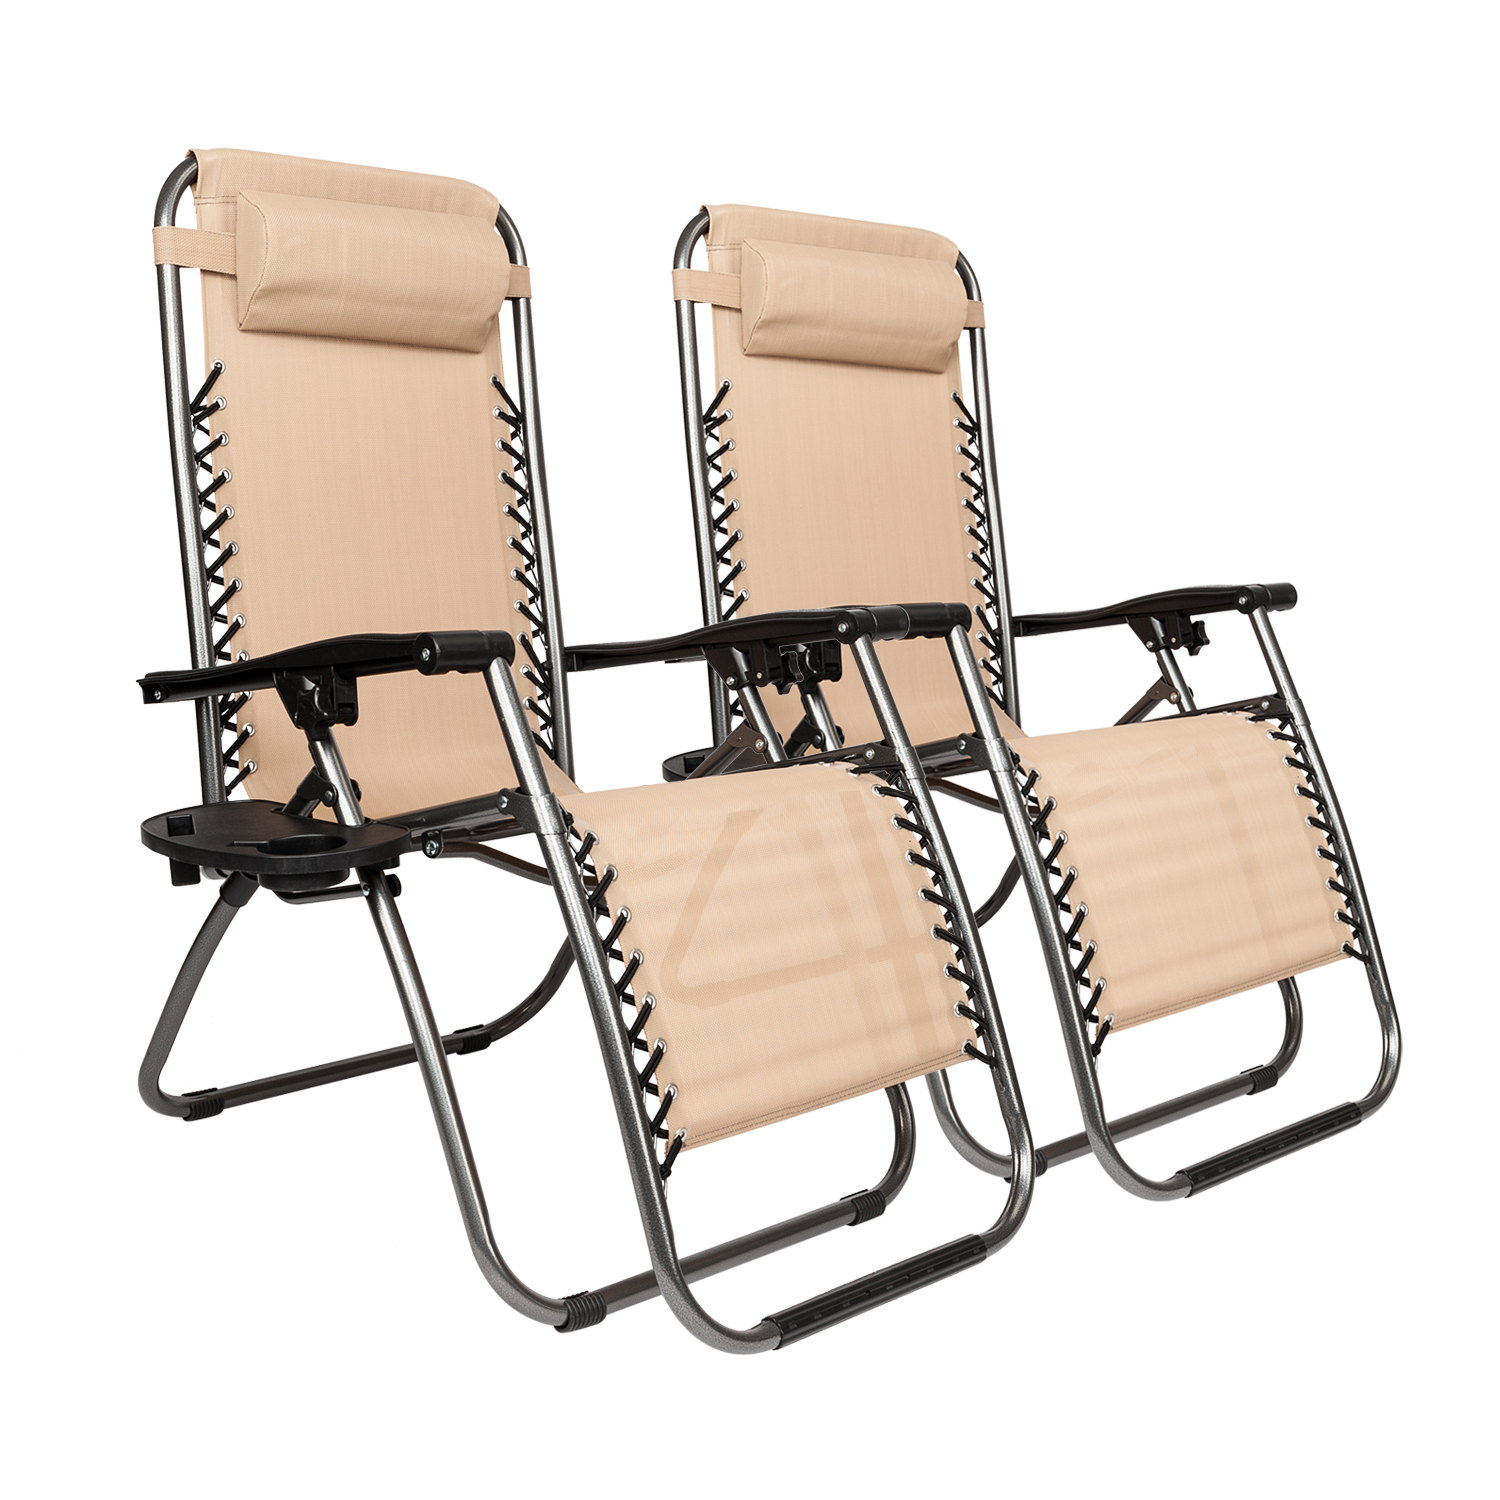 Patio Folding Chairs Details About 2pc Folding Zero Gravity Reclining Lounge Chairs Outdoor Beach Patio Yard Khaki